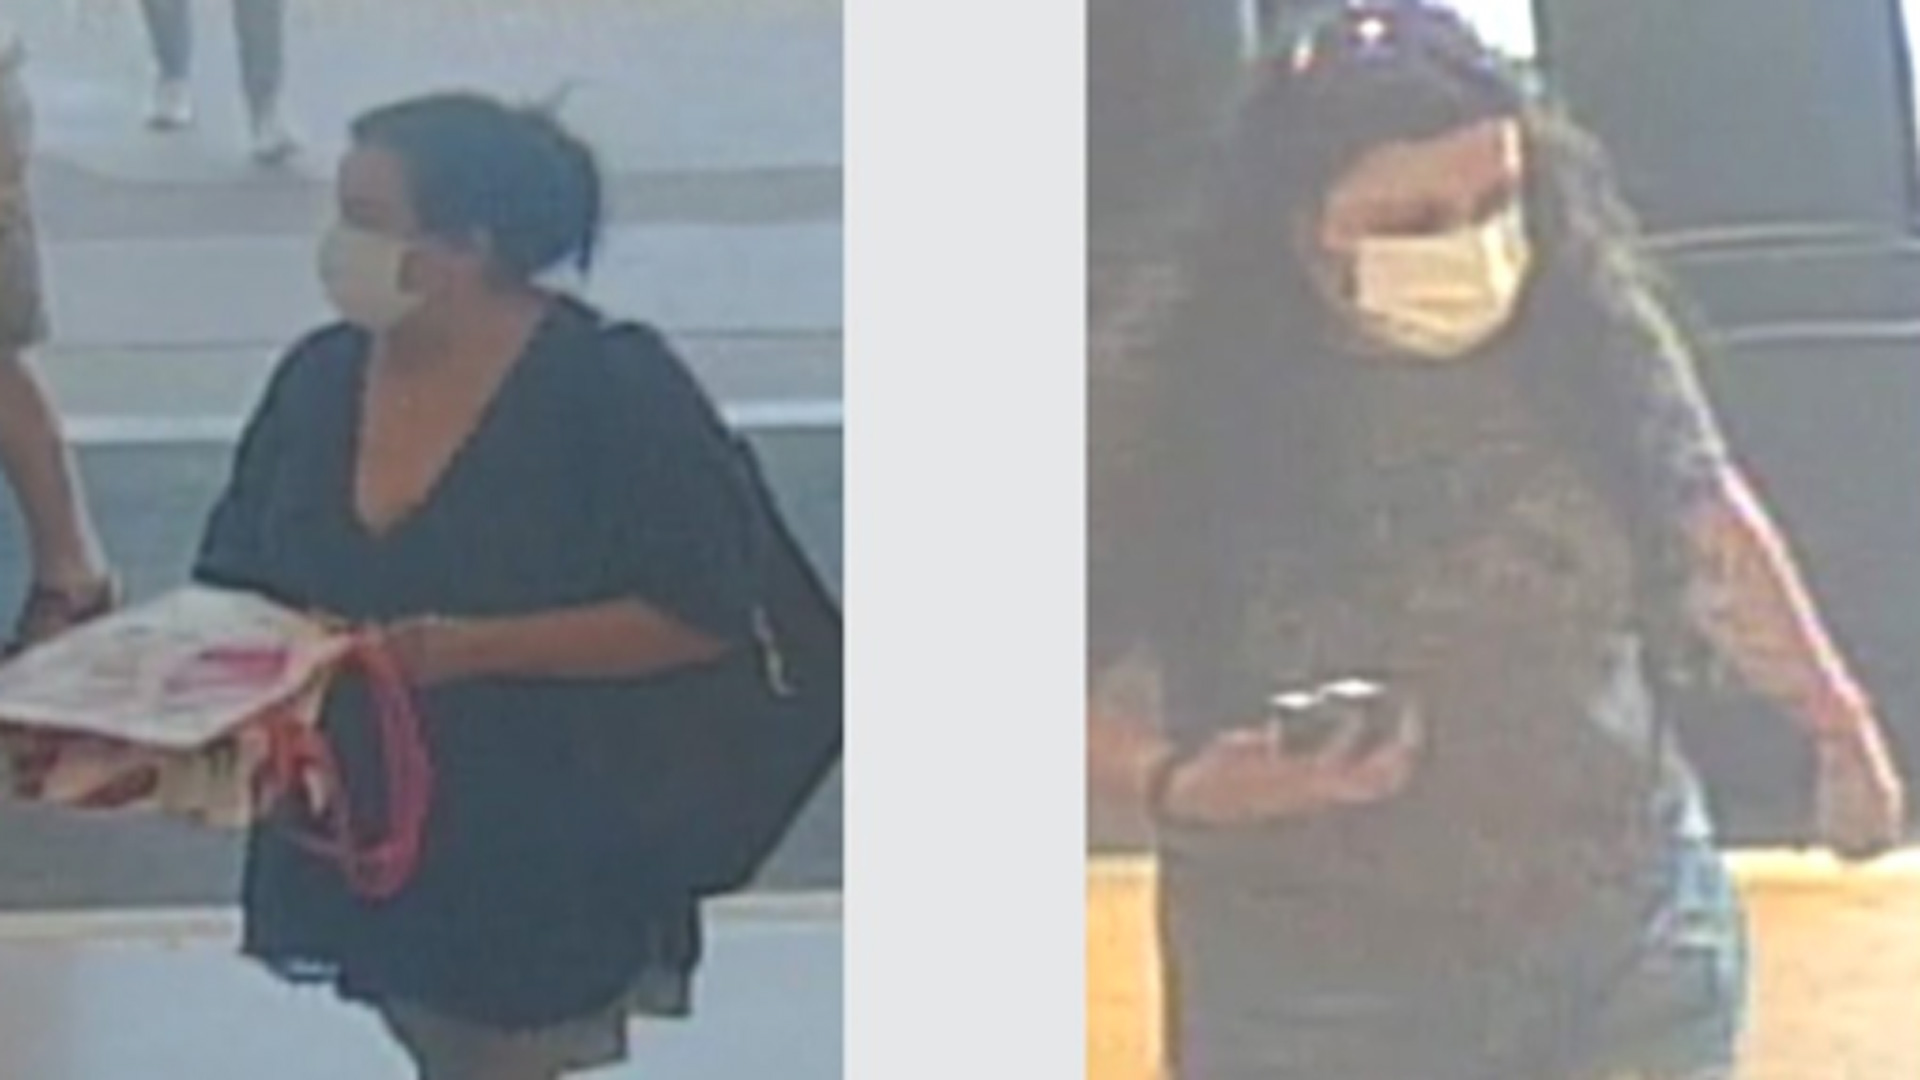 The Los Angeles County Sheriff's Department released images of the suspects on Aug. 13, 2020.